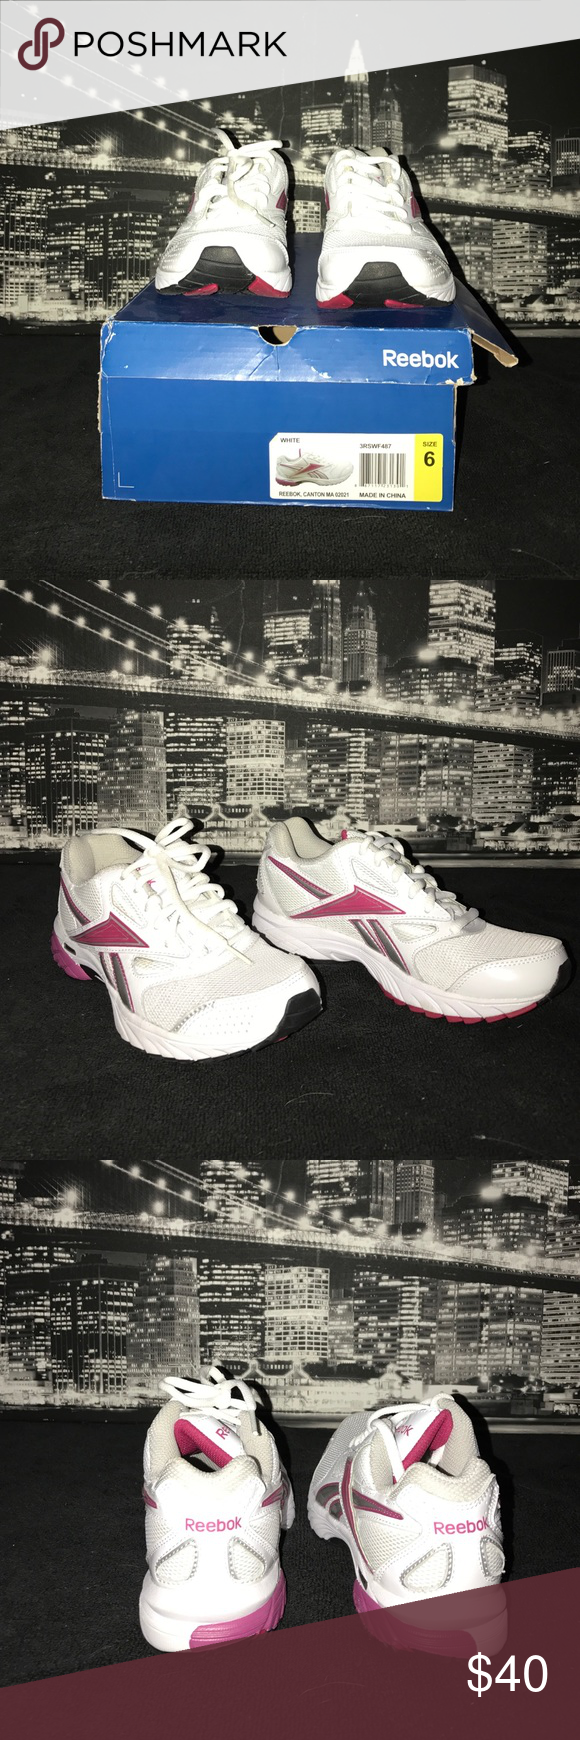 NWIB Reebok tennis shoes Great condition. Only tried on in store, never worn out! Classic style tennis shoes by Reebok. Made for comfort, support and durability. Still have original box too! Start the new year off right with some nice new kicks! Reebok Shoes Sneakers